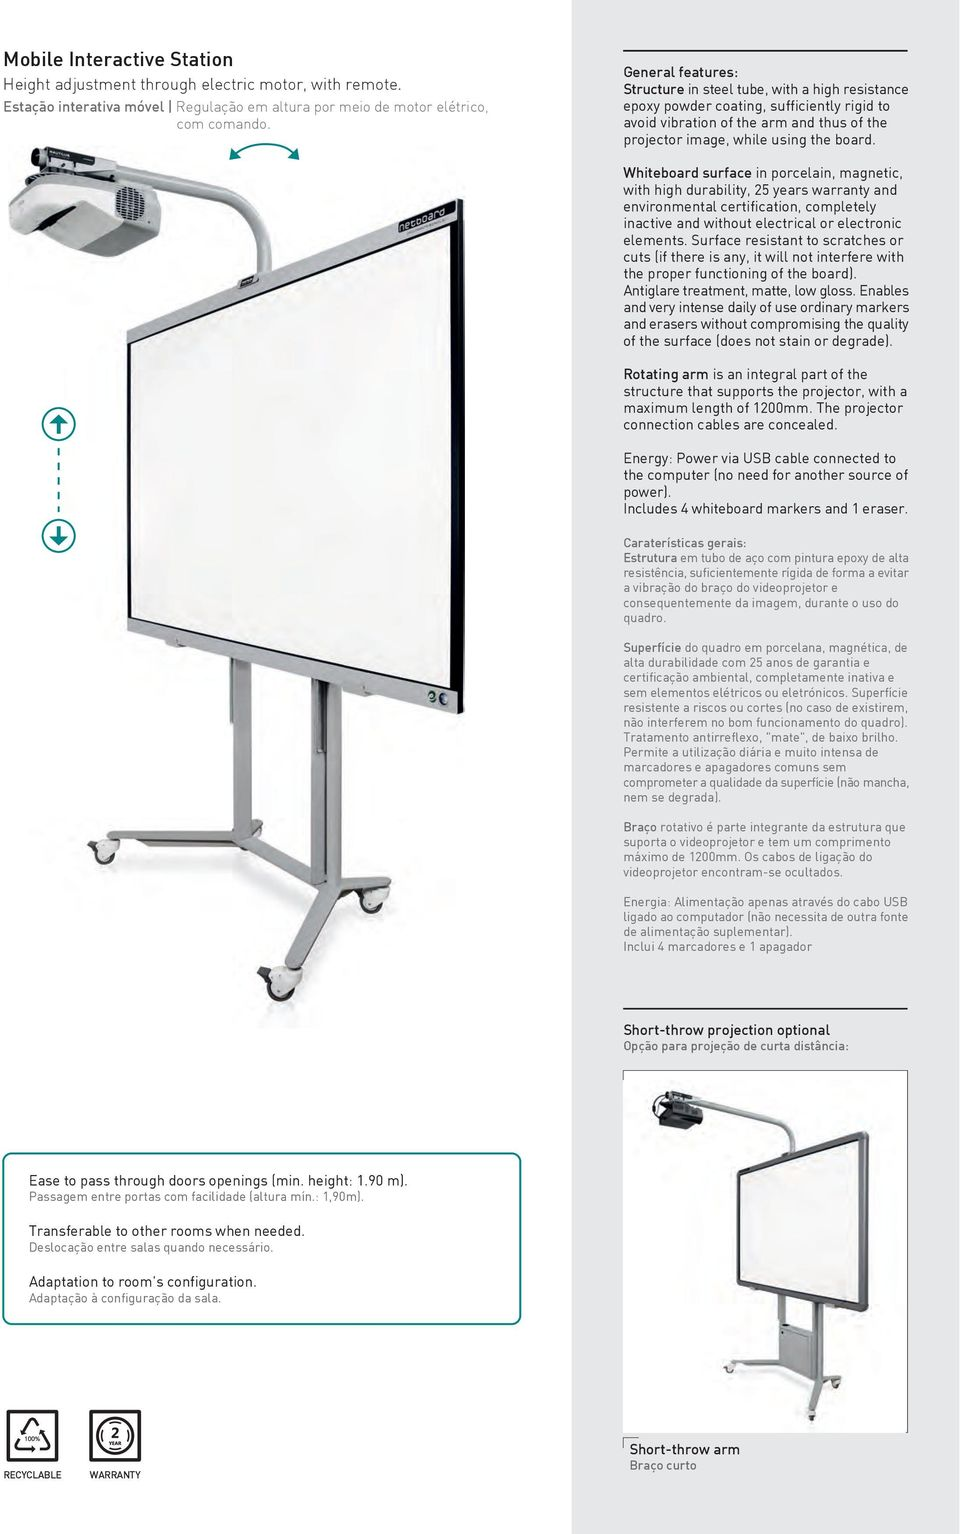 Whiteboard surface in porcelain, magnetic, with high durability, 25 years warranty and environmental certification, completely inactive and without electrical or electronic elements.